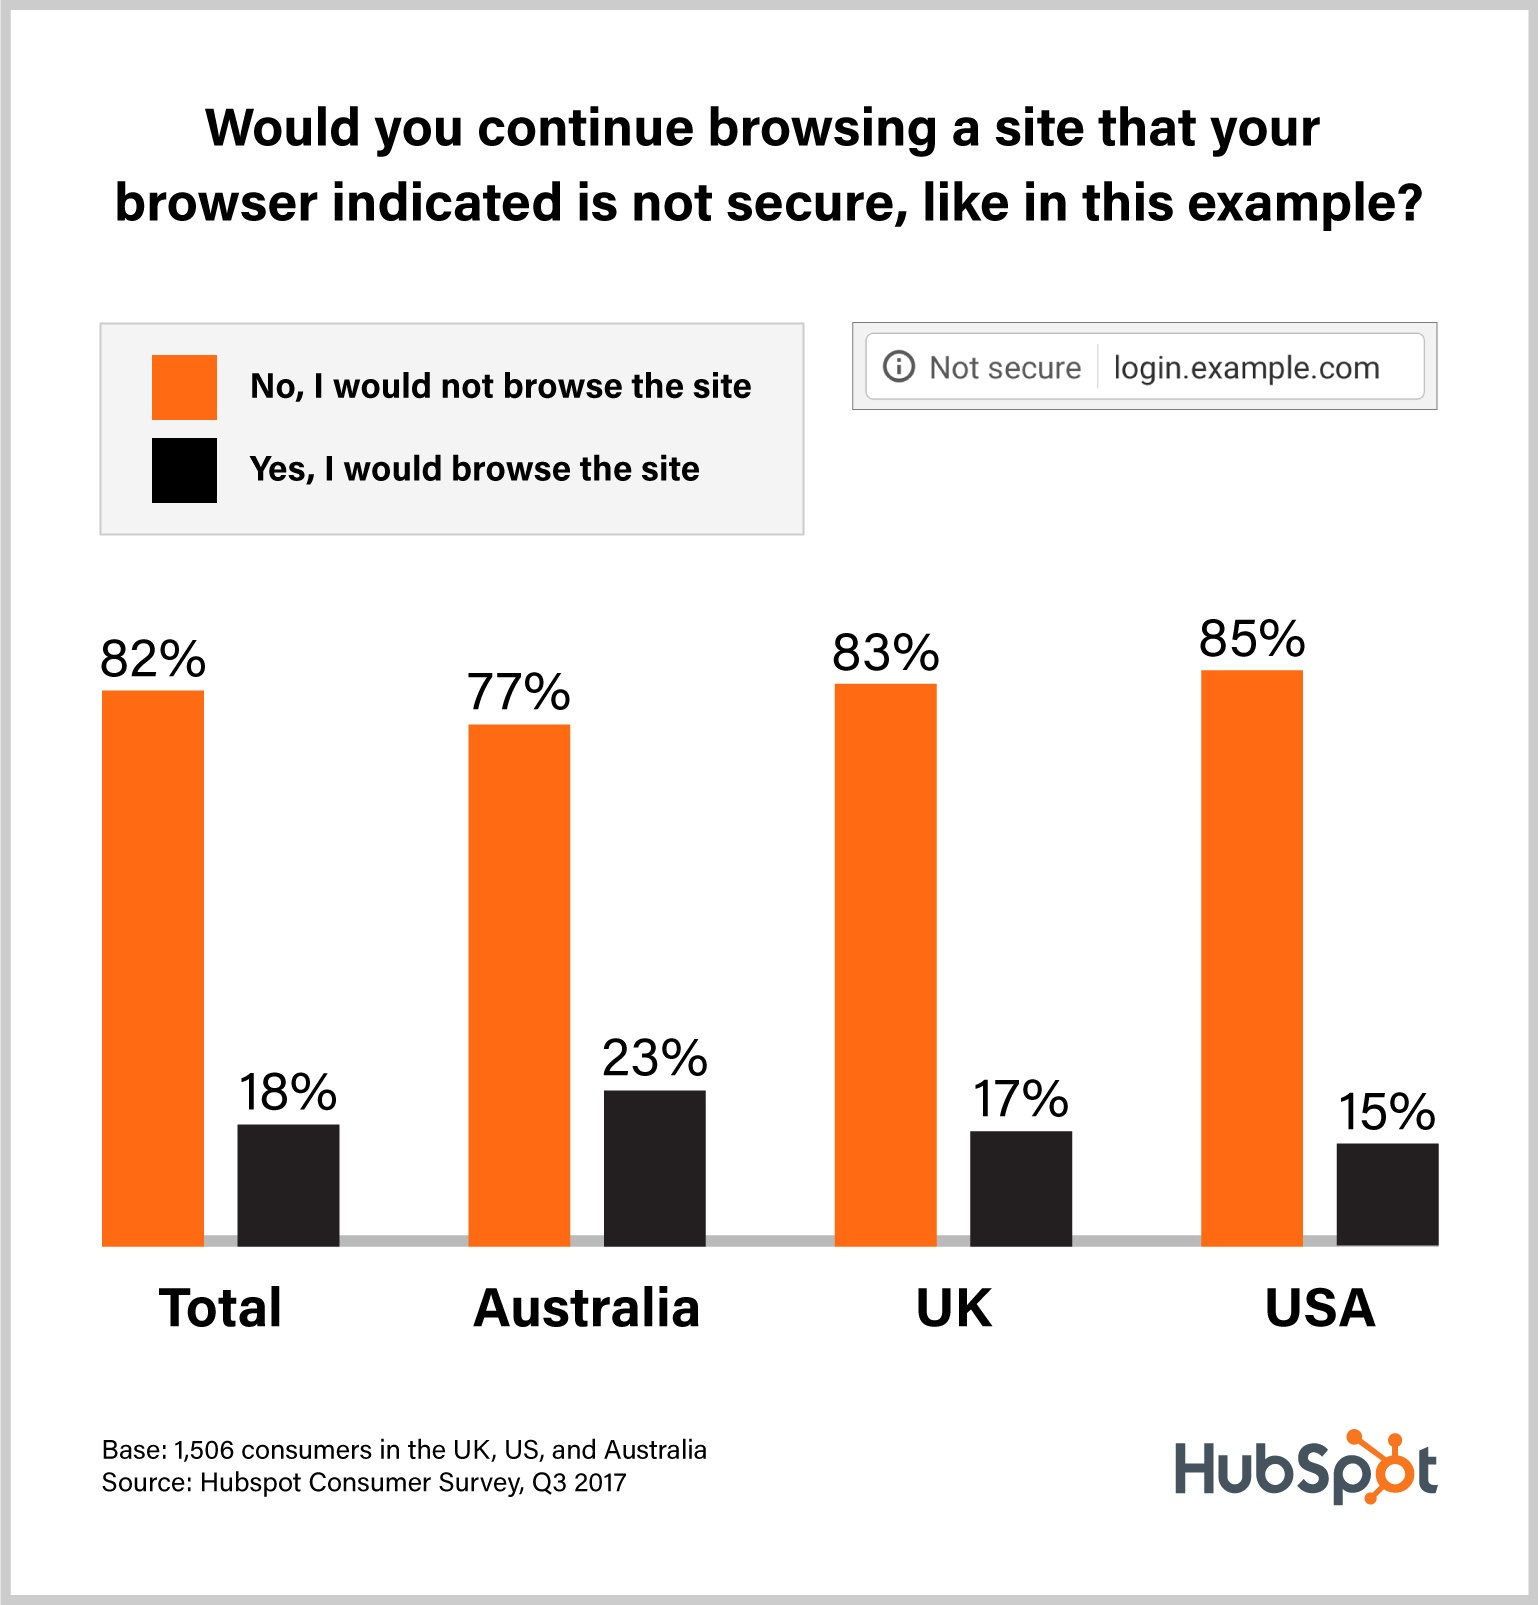 Statistics on whether people would browse a website that is not secure